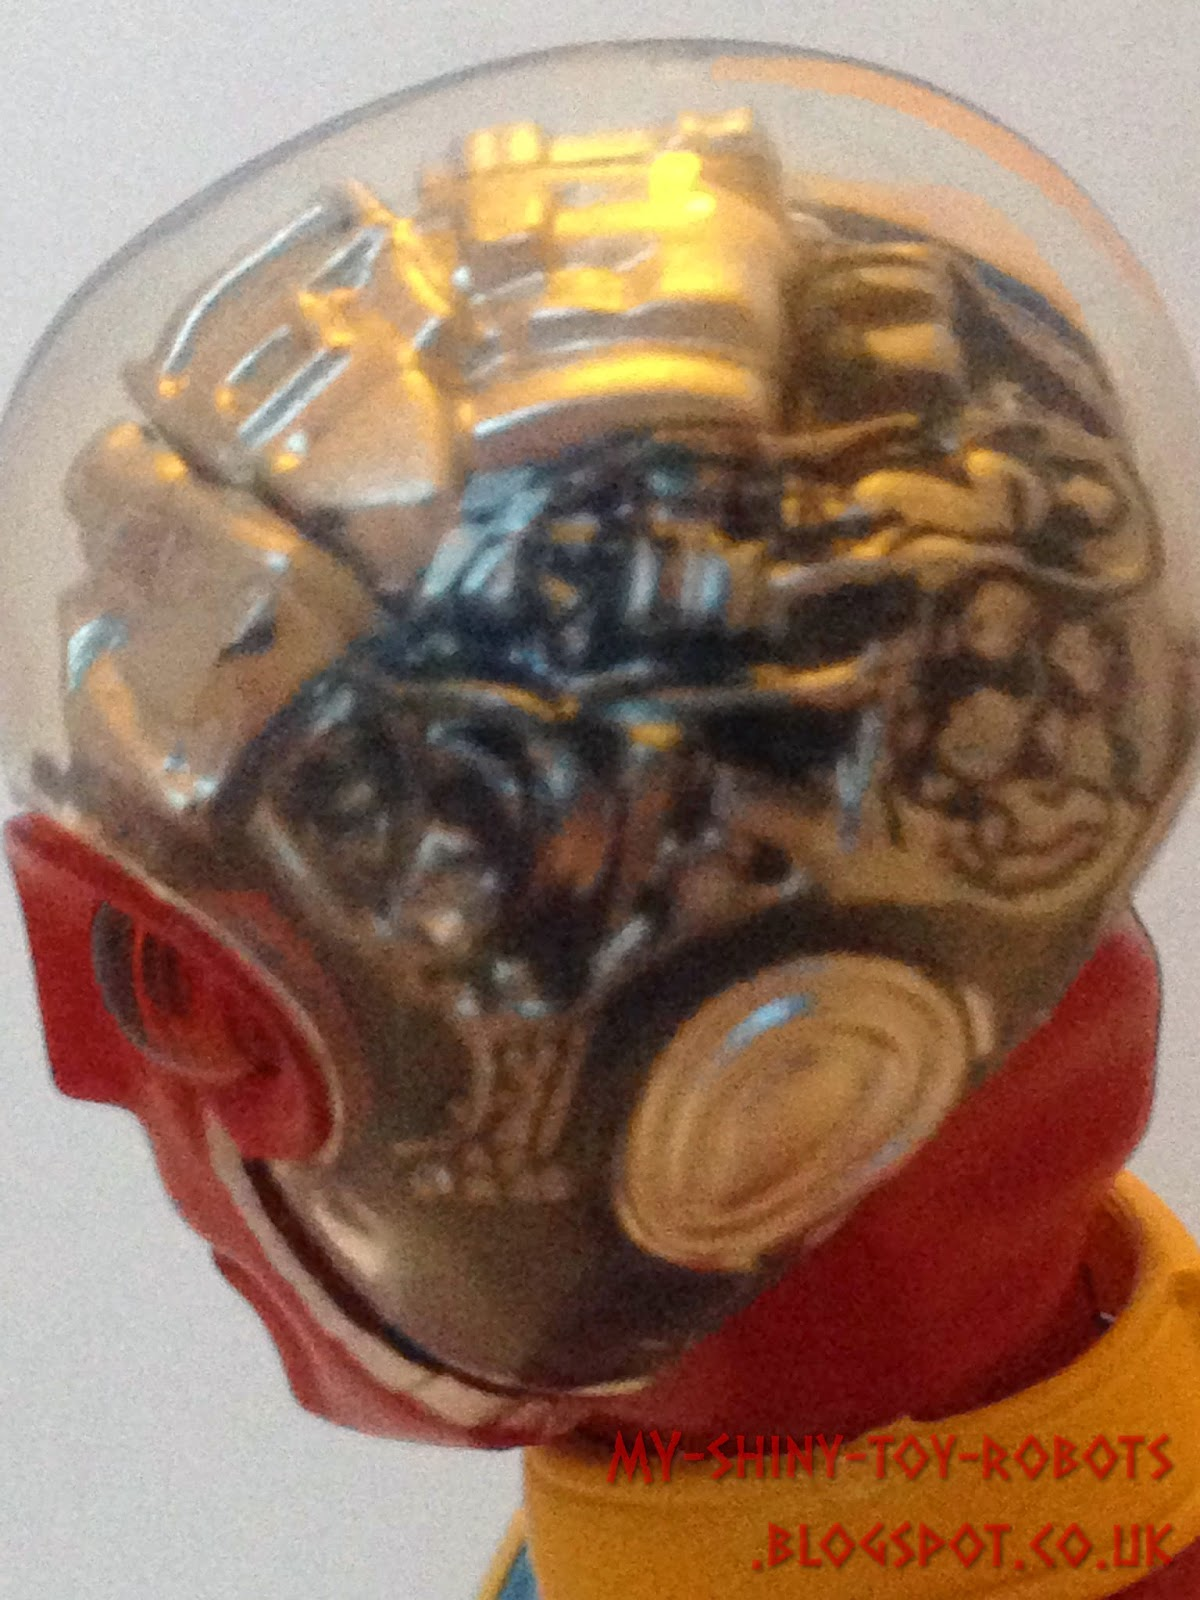 A look inside Kikaider's head